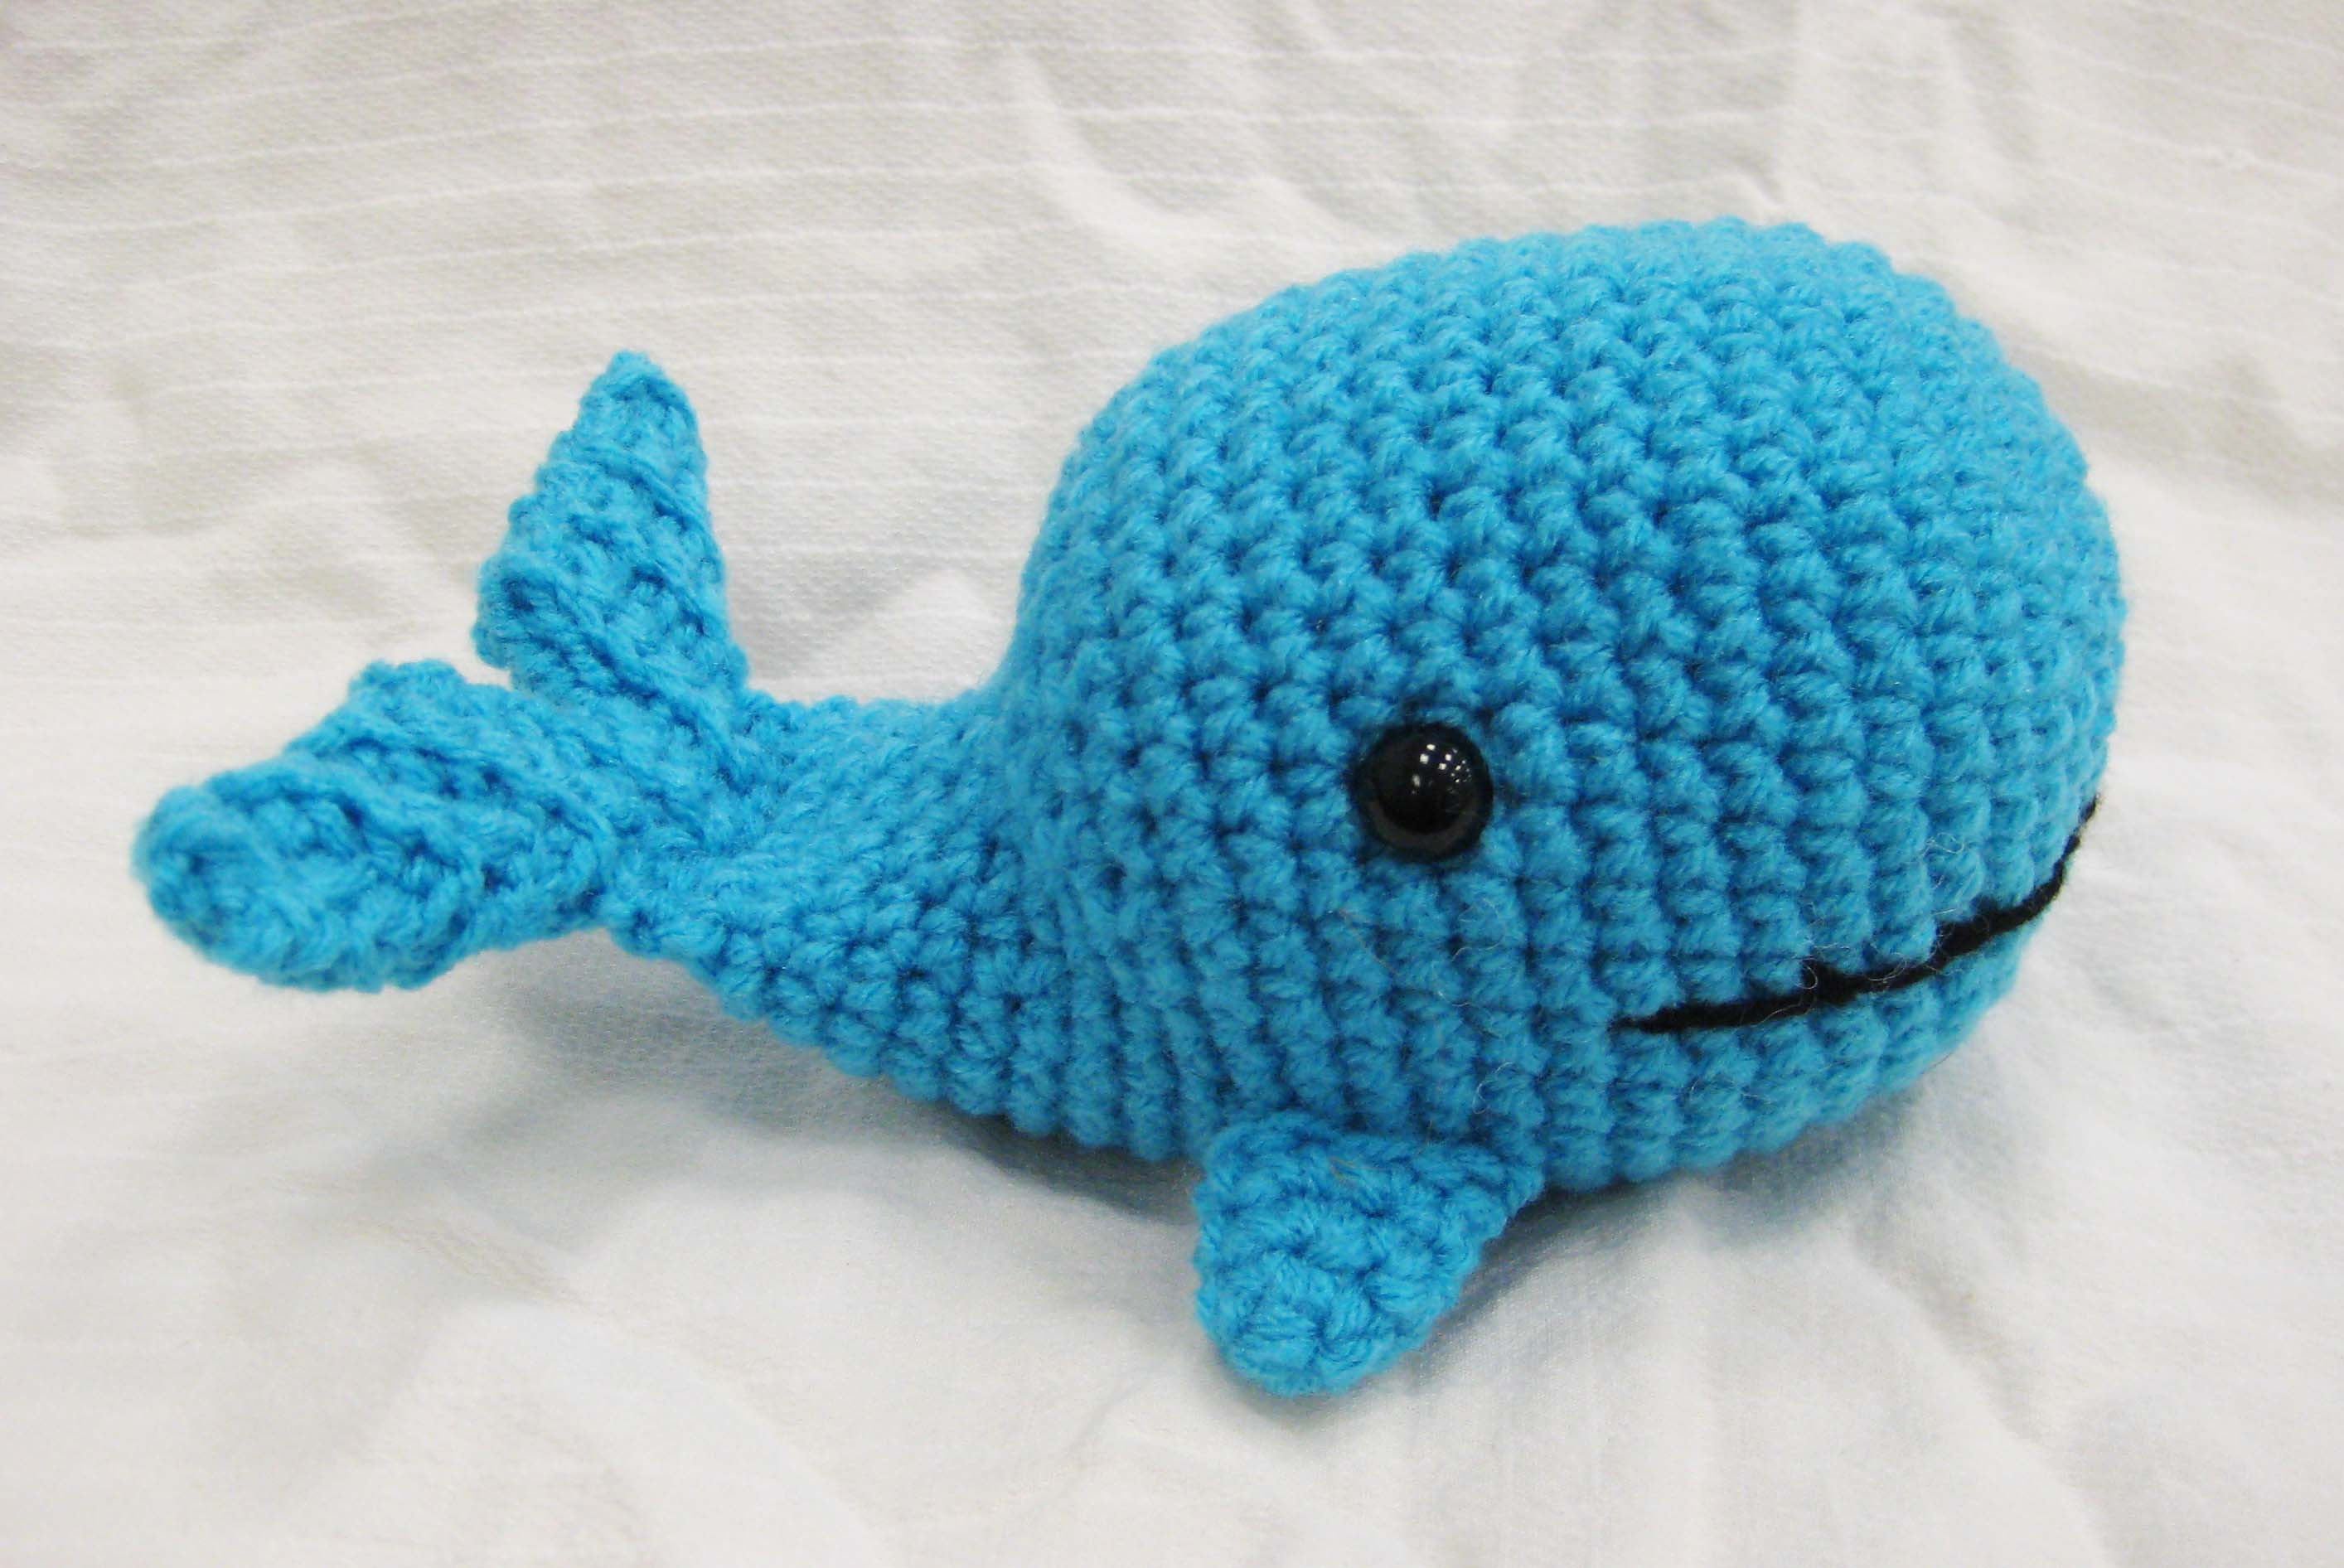 Amigurumi Christmas Ornaments Patterns : Wilfred the Whale - Amigurumi Calendar Contestant - Interweave